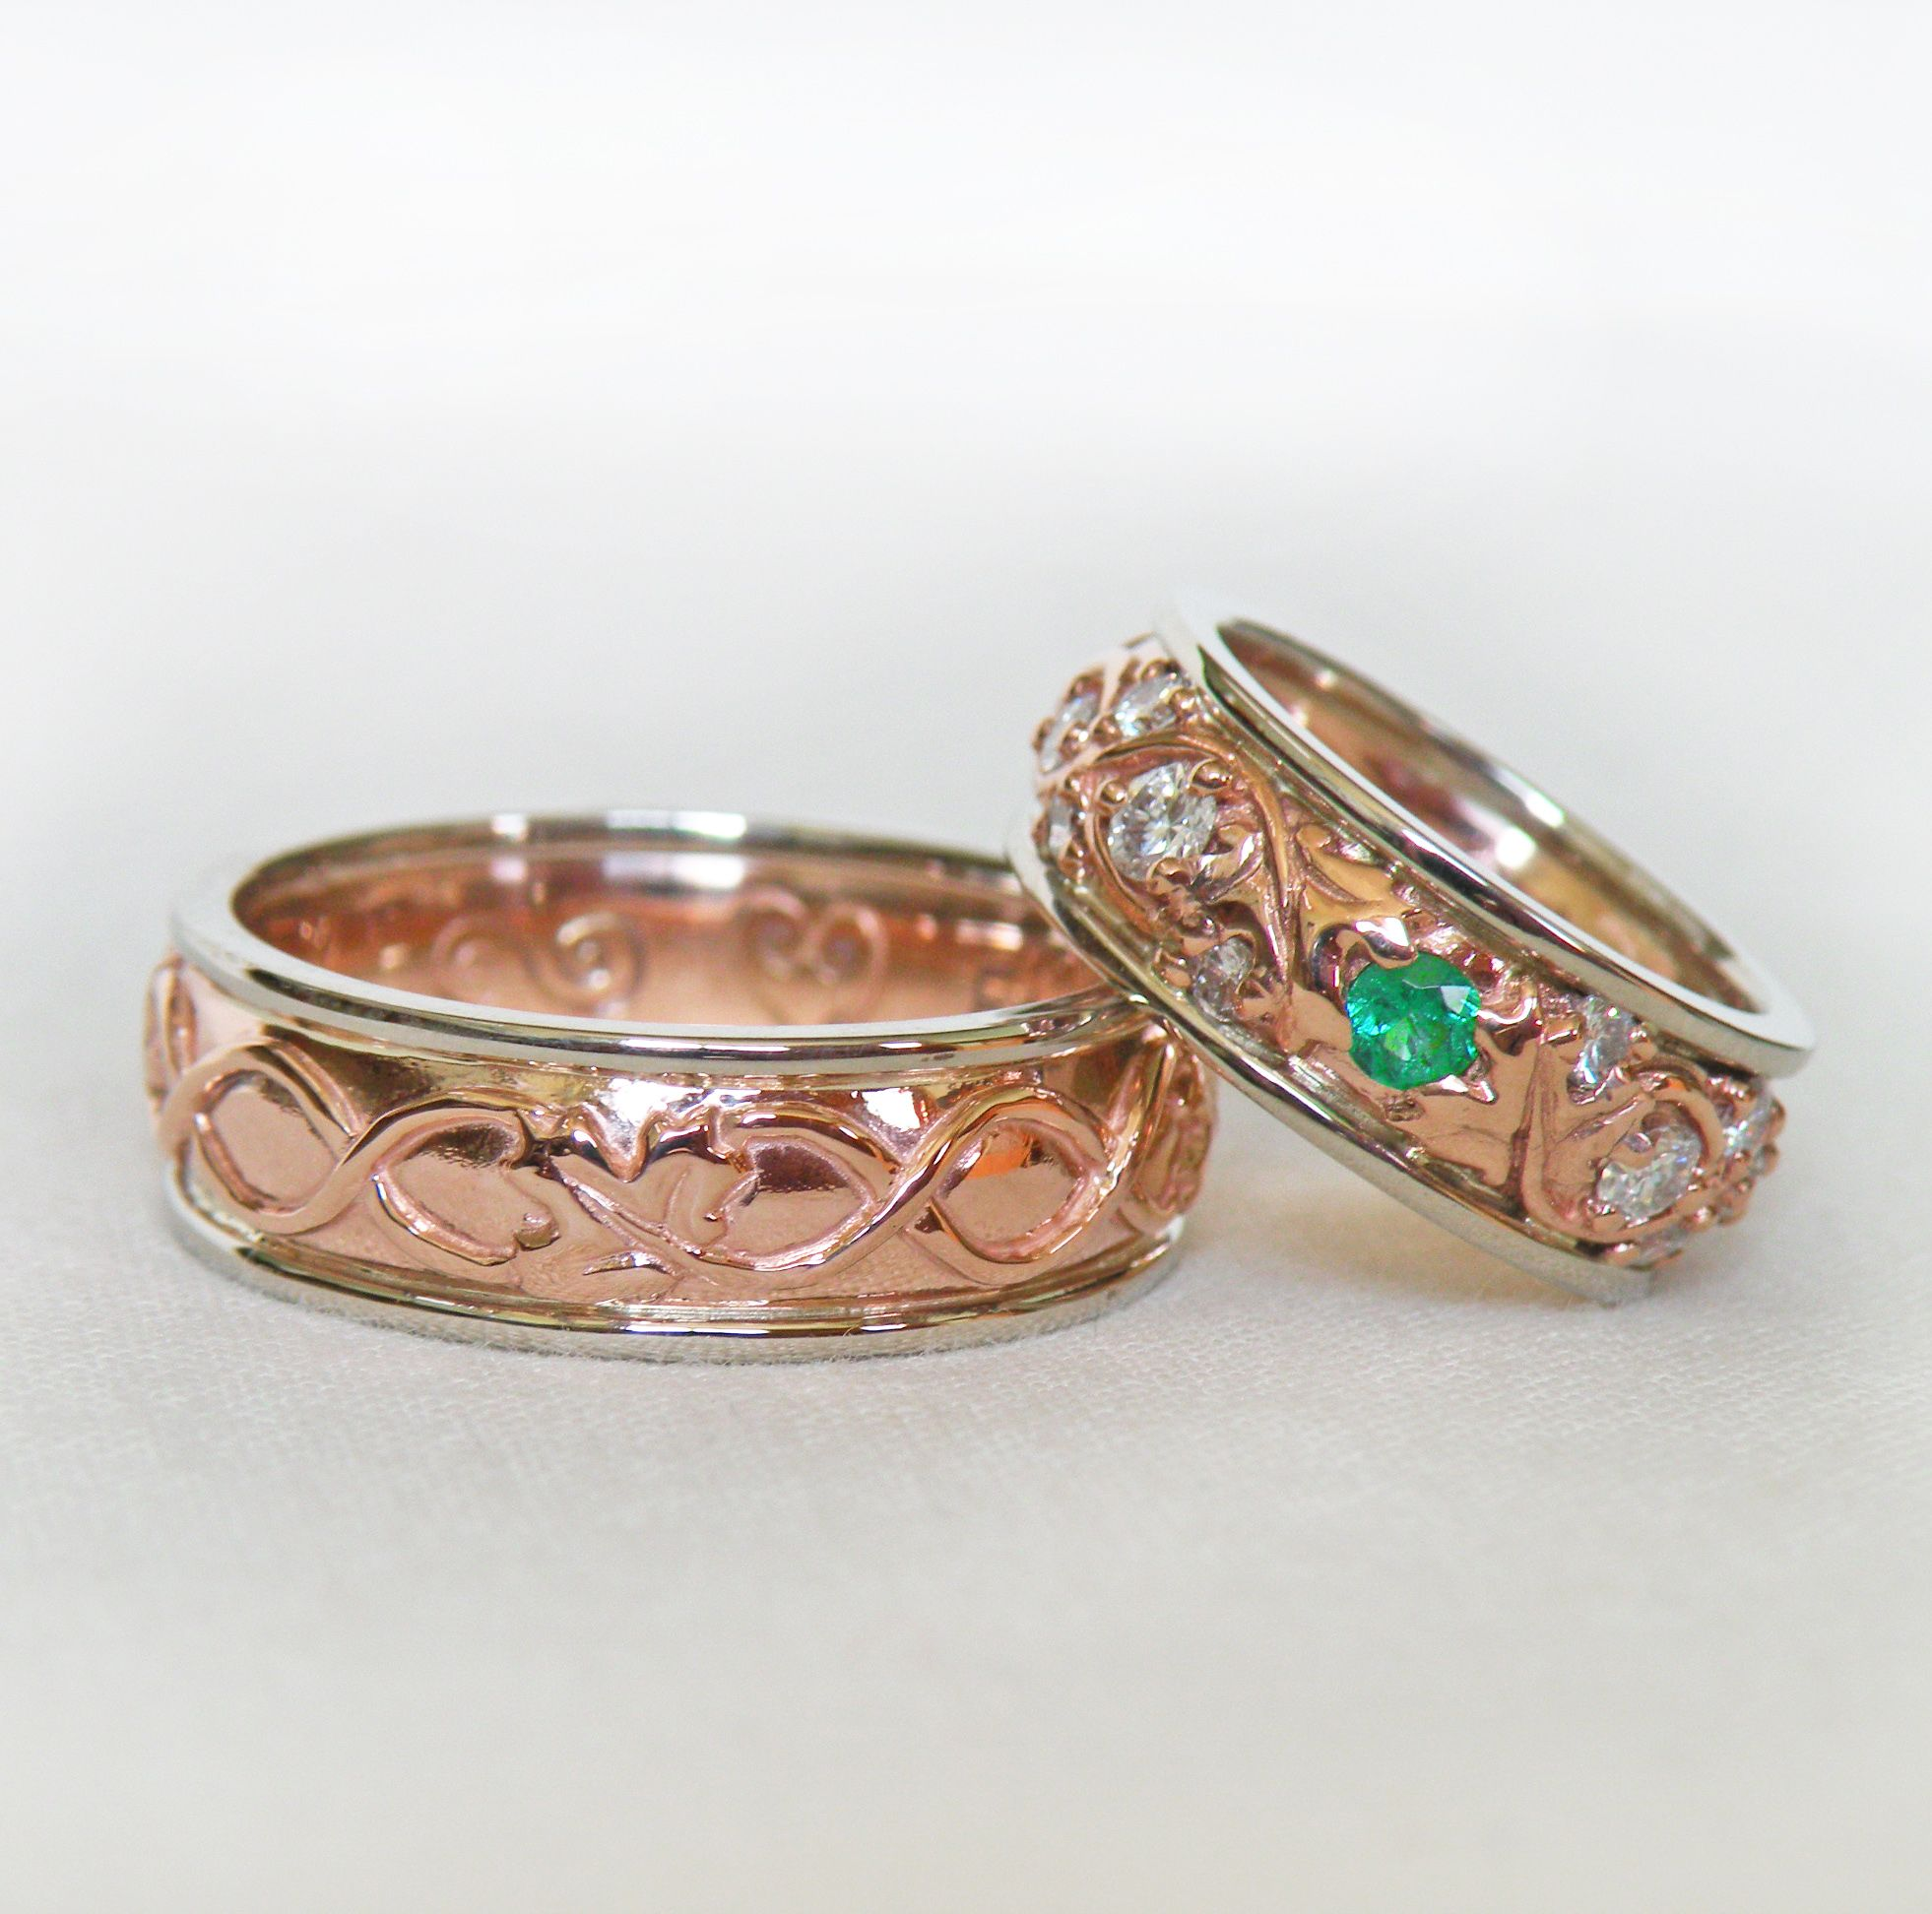 Woman's Band Set With Diamonds And A Central Emerald The Design Has Twining Celtic Knots Maple Leaves Spaced Throughout: Maple Leaf Wedding Band At Websimilar.org